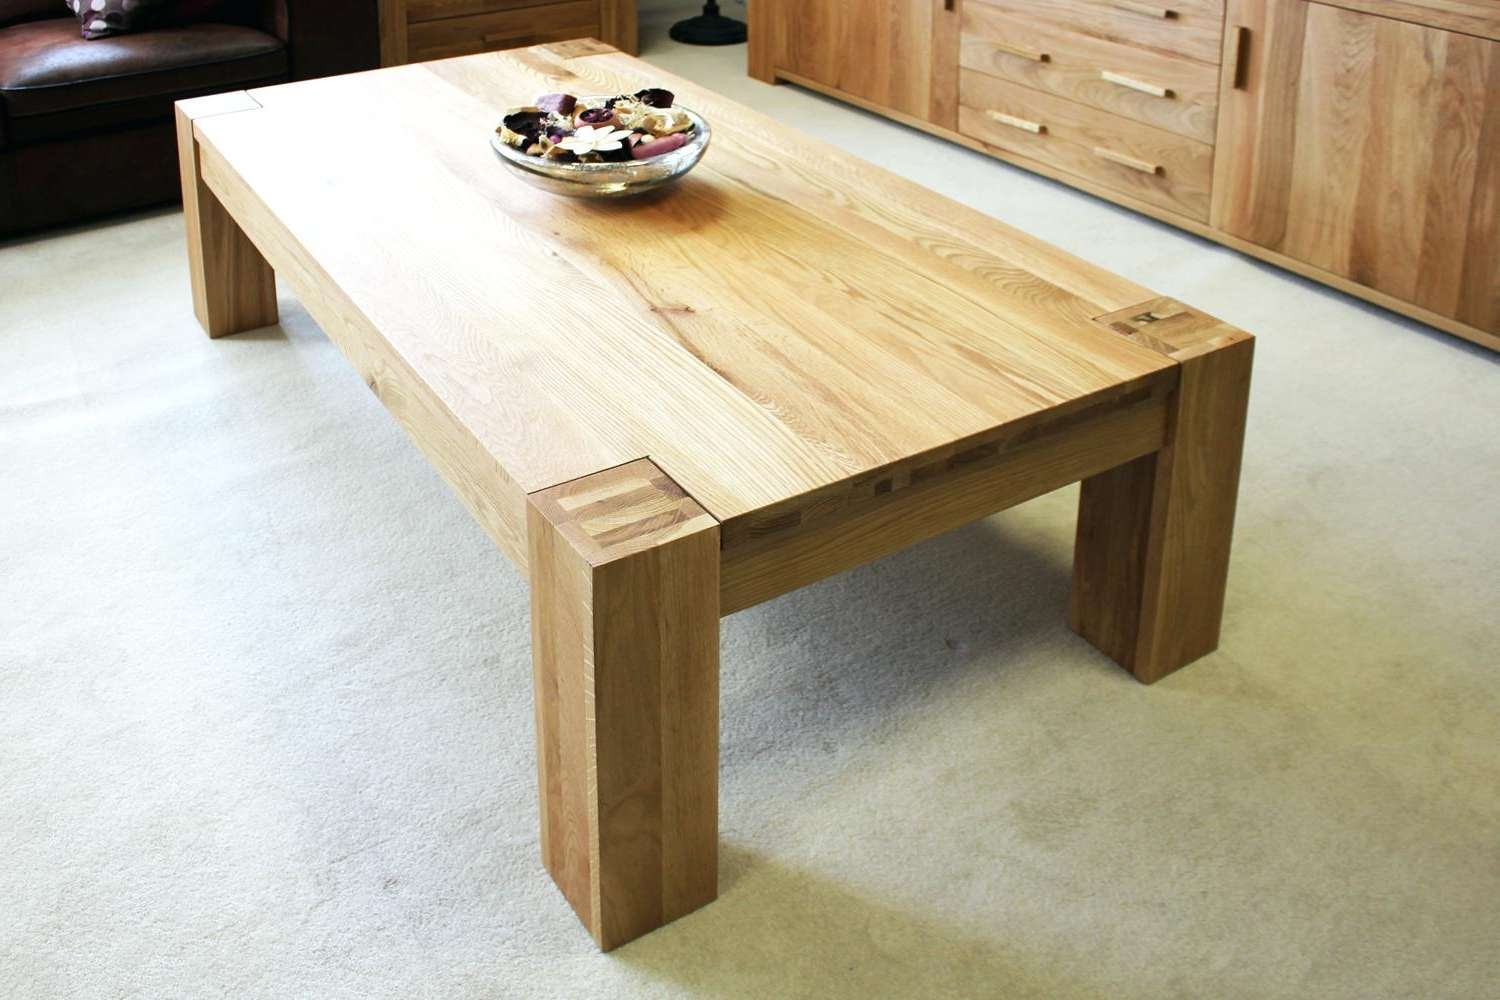 Widely Used Large Oak Coffee Tables Intended For Large Oak Coffee Tables Extra Table Best Of Solid With Storage (View 3 of 20)